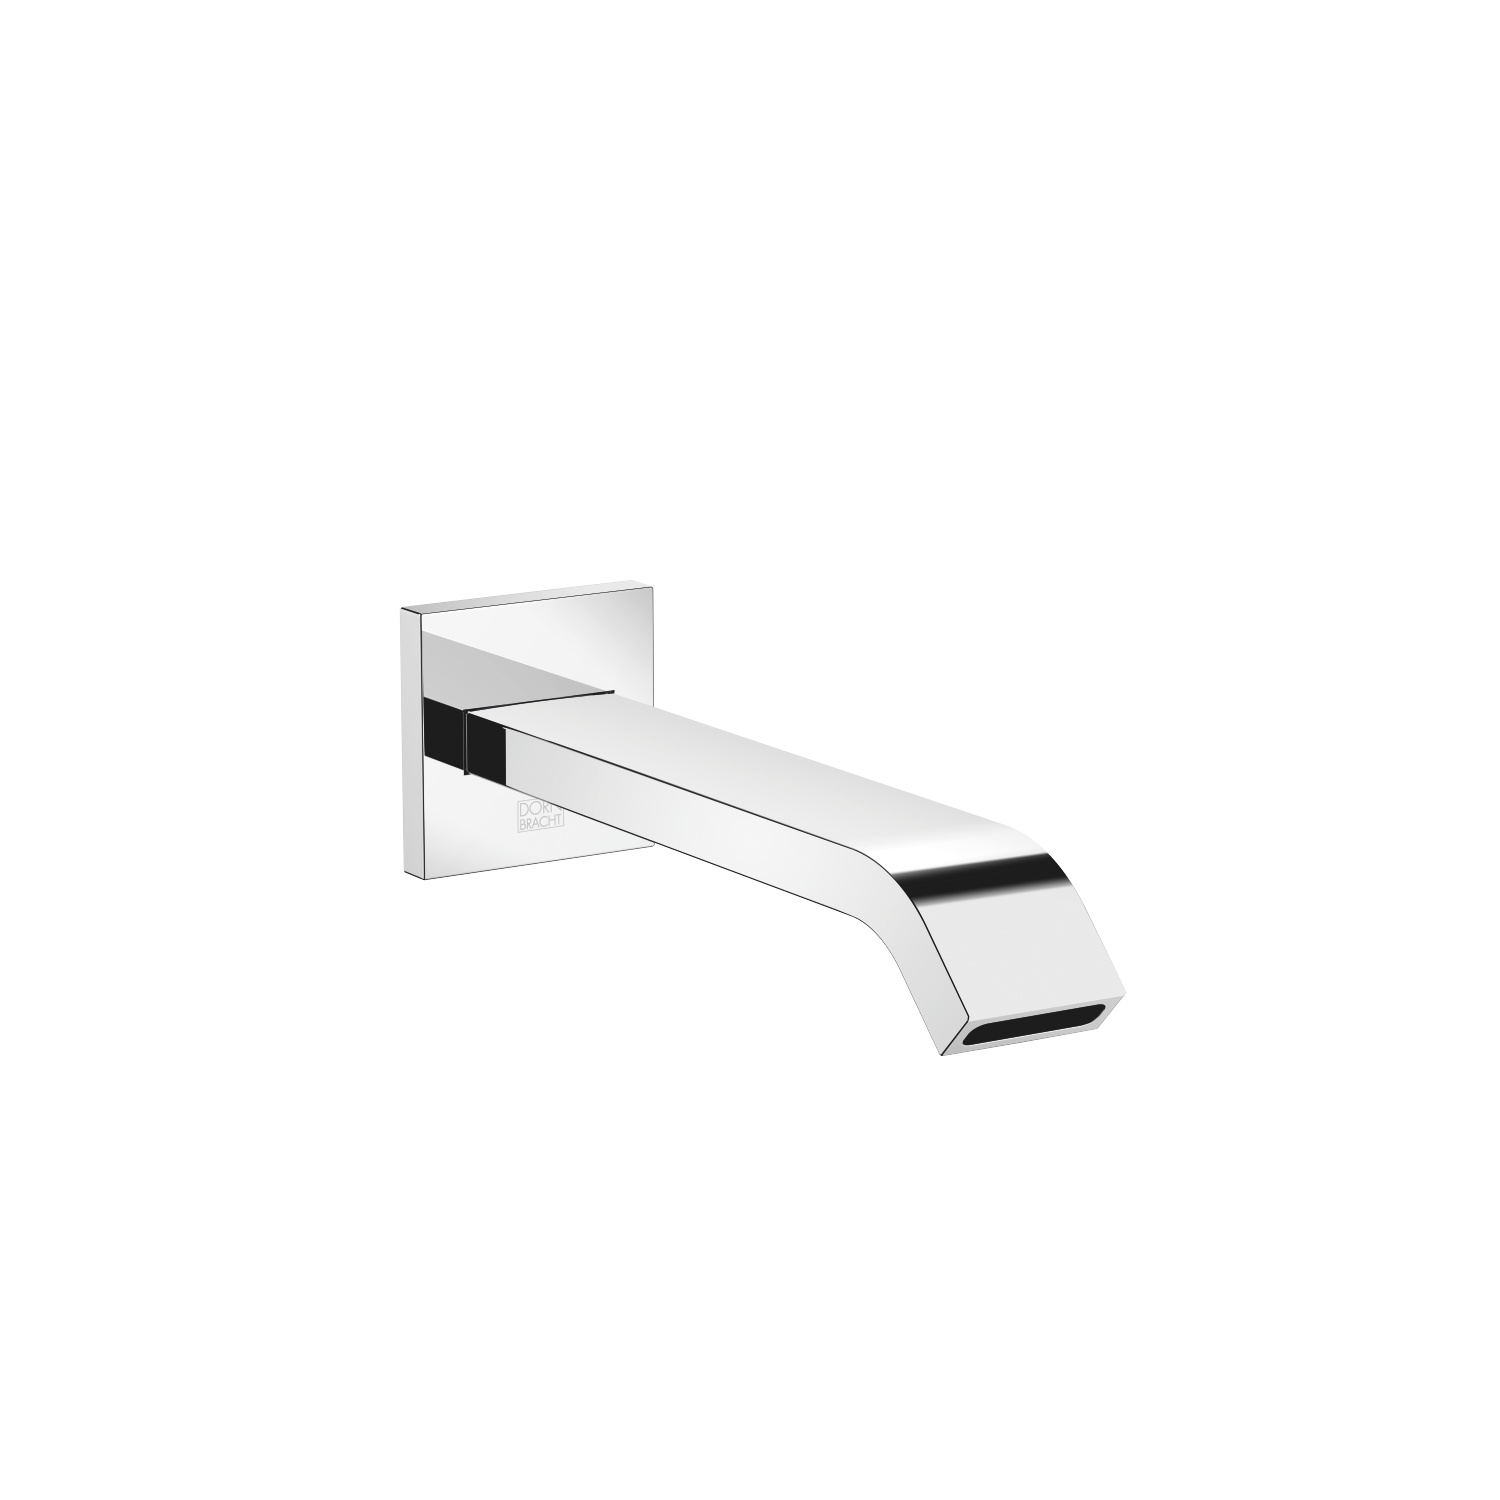 bath spout for wall mounting - polished chrome